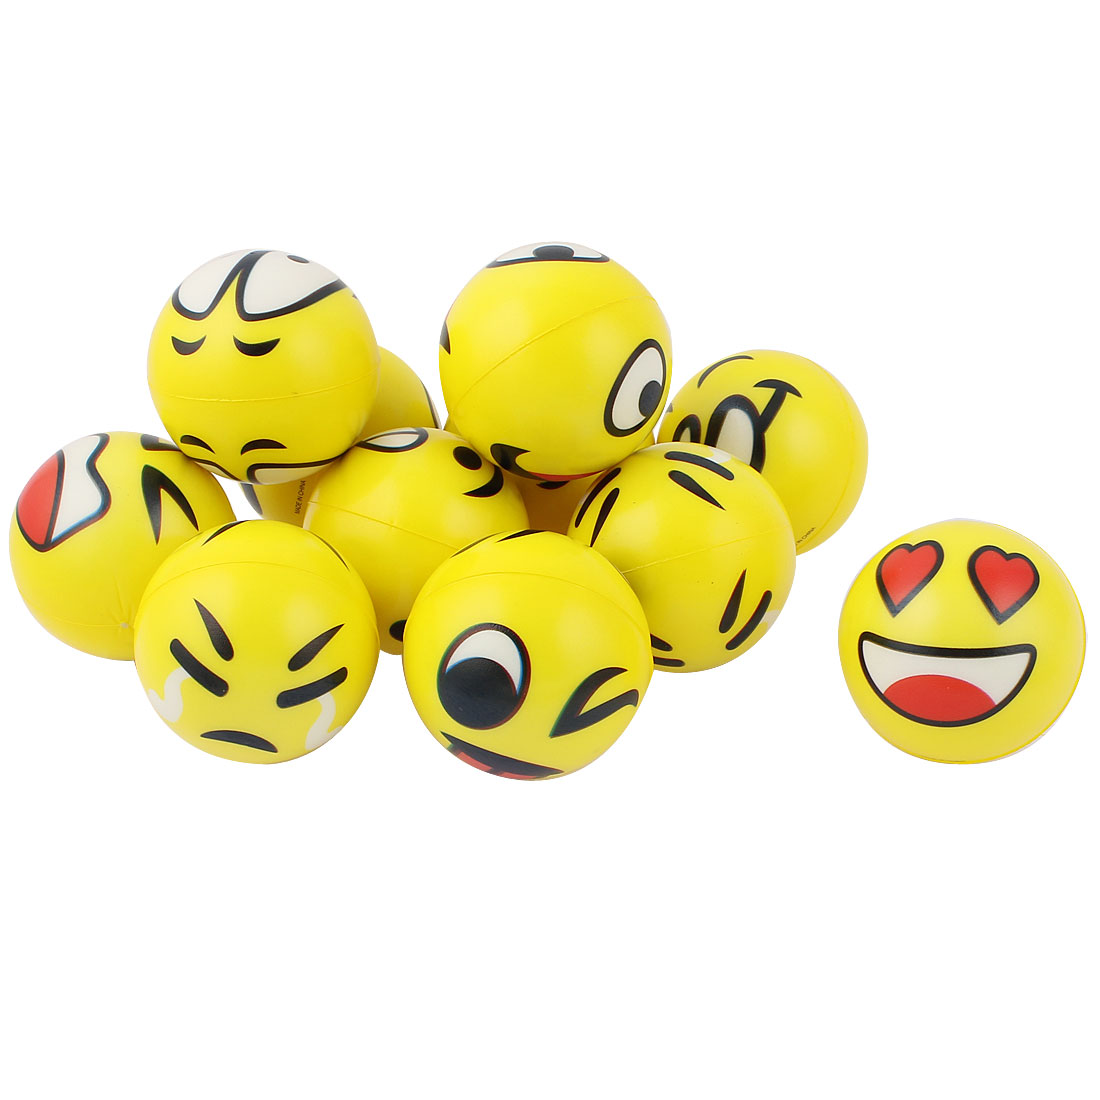 11pcs Yellow Foam Happy Face Hand Wrist Finger Exercise Stress Relief Squeeze Ball